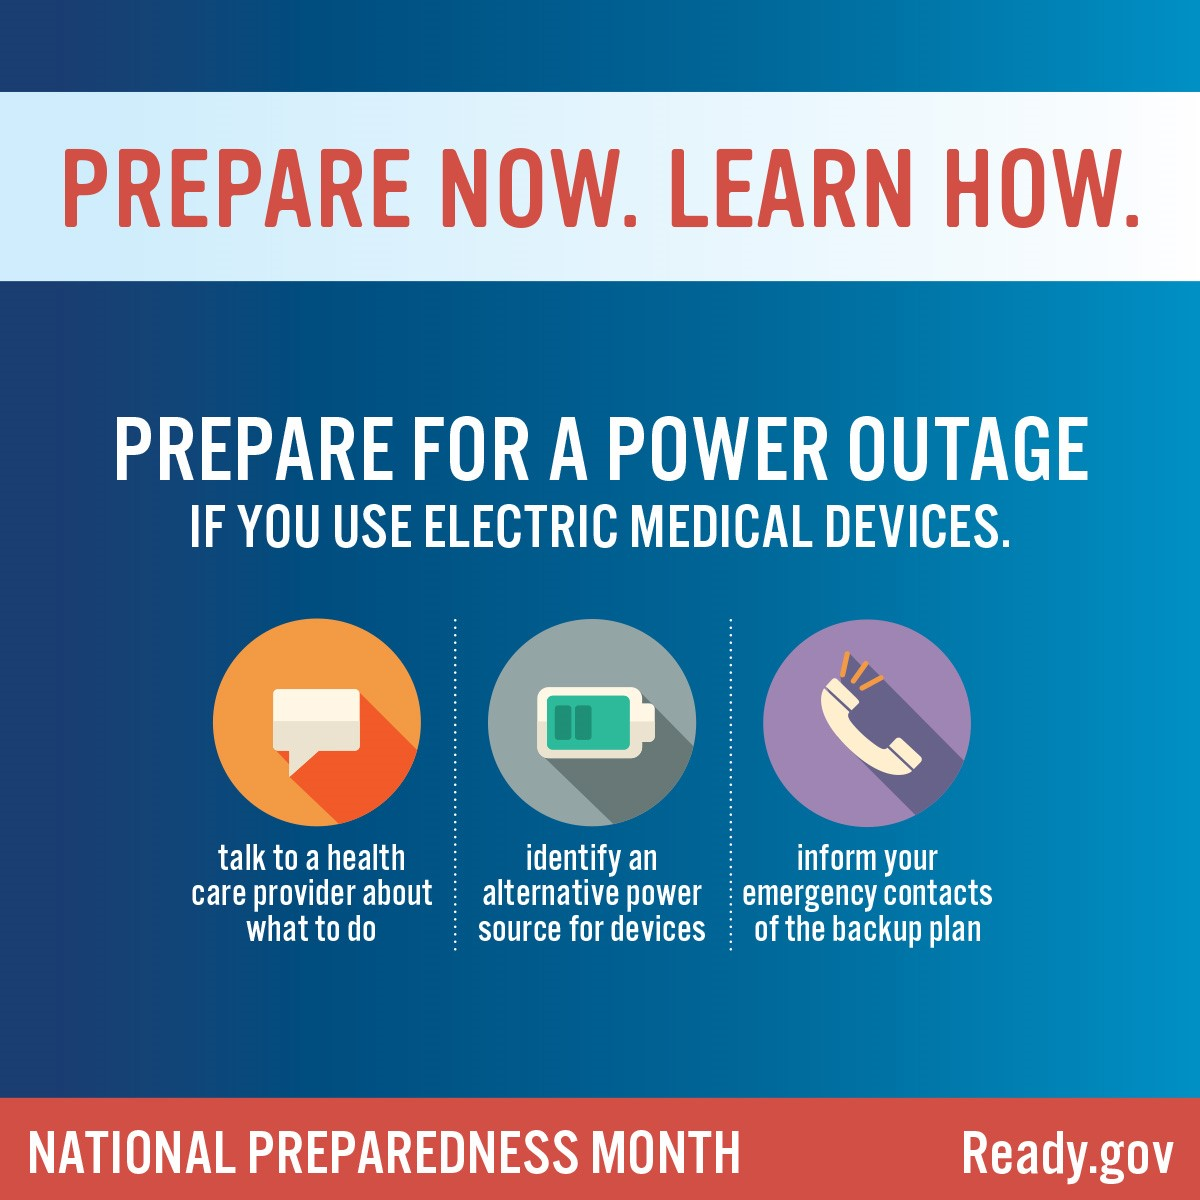 Prepare for a power outage if you use electric medical devices: talk to a health care provider about what to do; identify an alternative power source for devices; and inform your emergency contacts of the backup plan